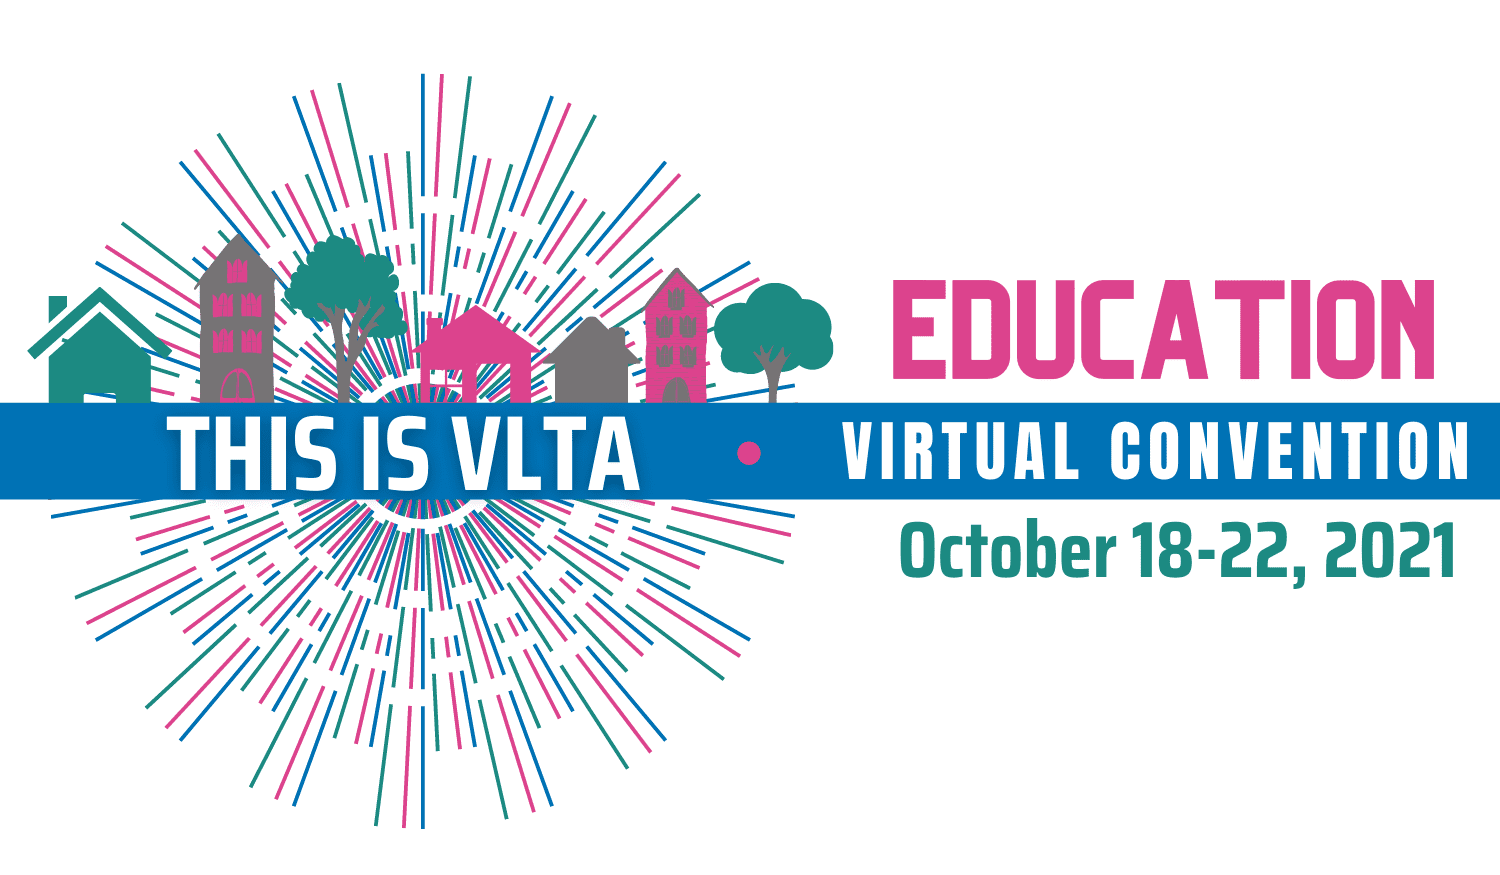 This is VLTA. Education virtual convention October 18 to 22, 2021